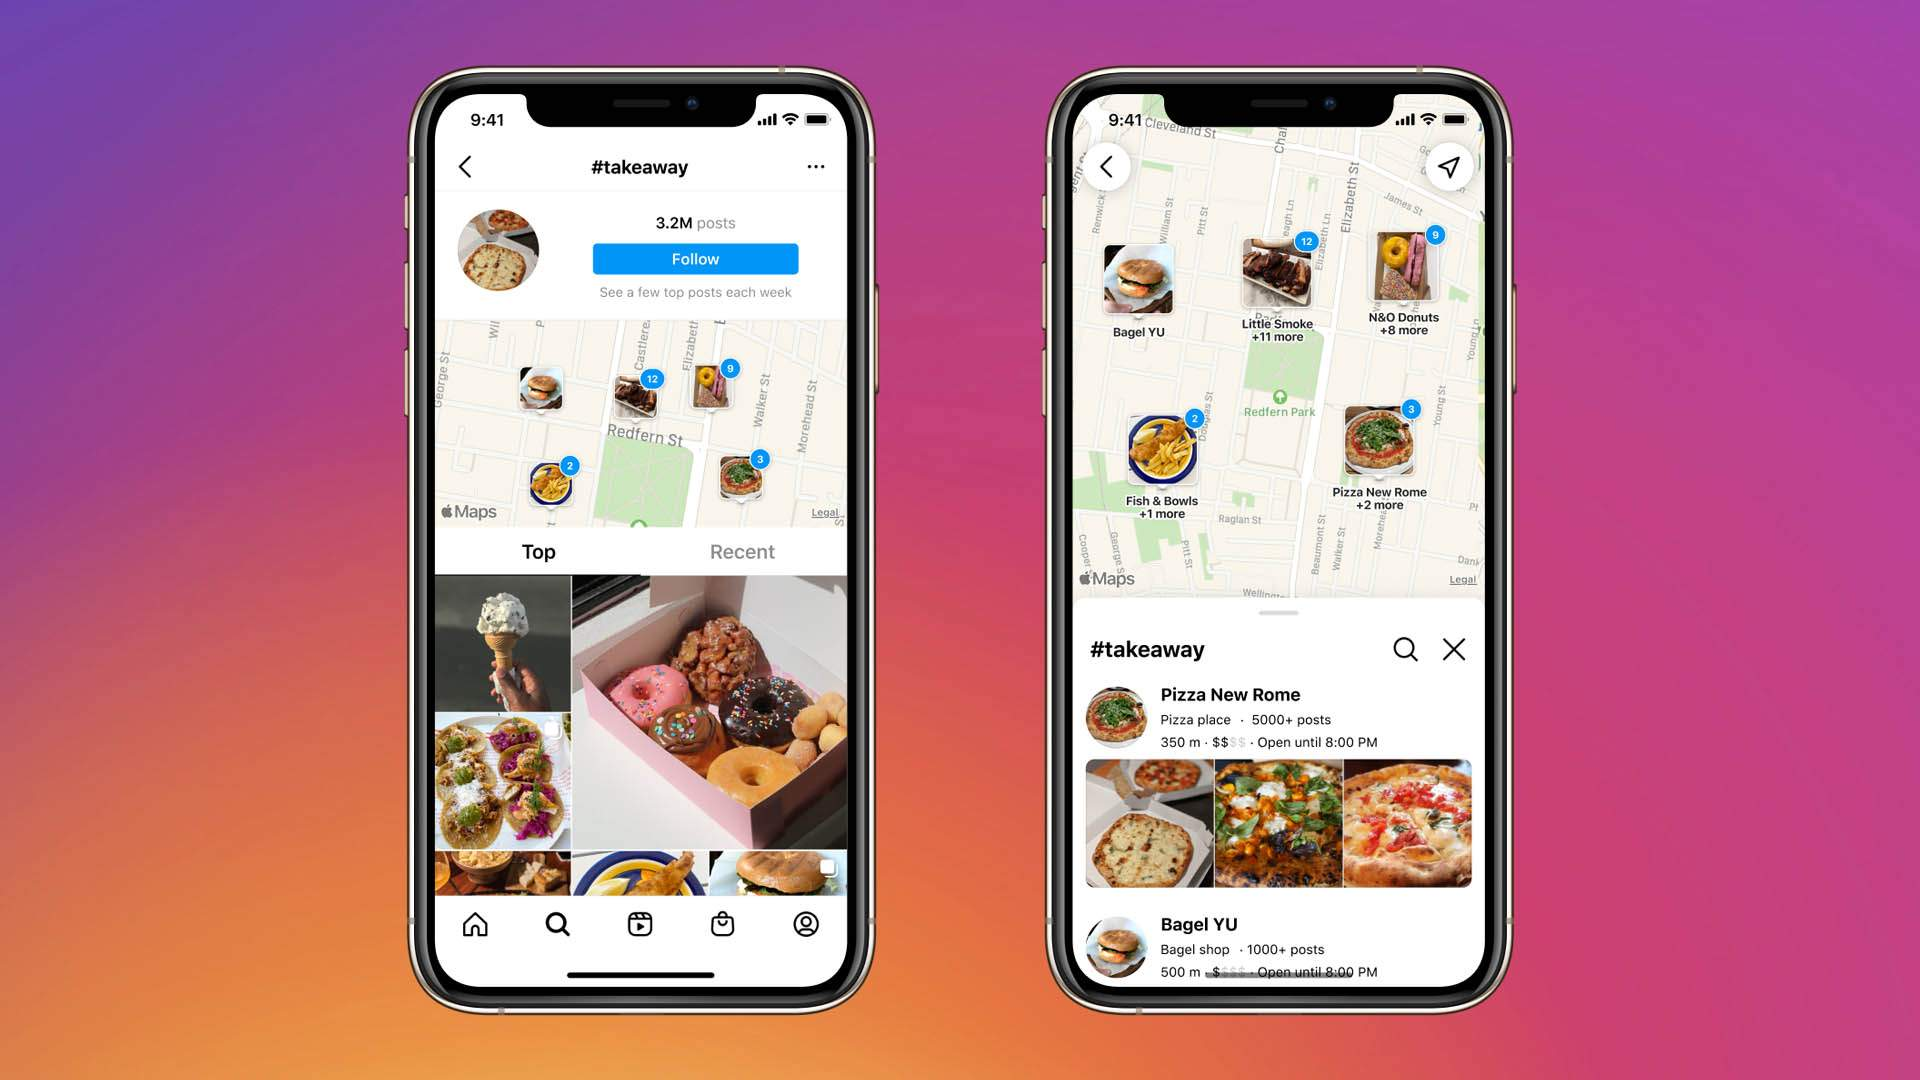 Instagram's New Map Search Feature Helps You Find Nearby Restaurants, Bars and Small Businesses